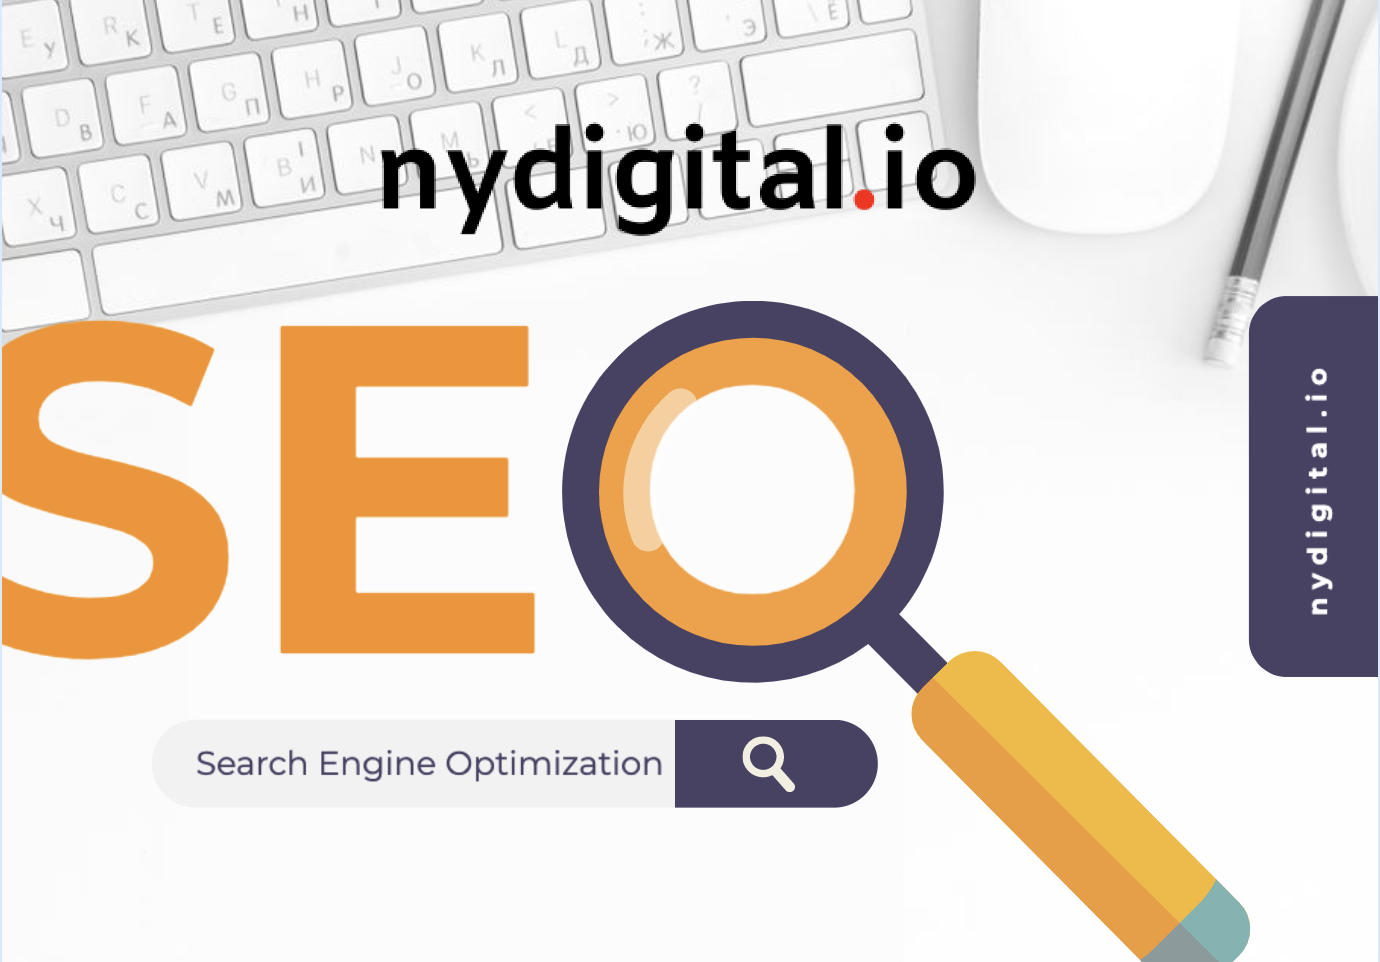 NYDigital.io Enables Businesses to Generate More Traffic, Sales And Leads Via Results-Oriented Search Engine Optimization